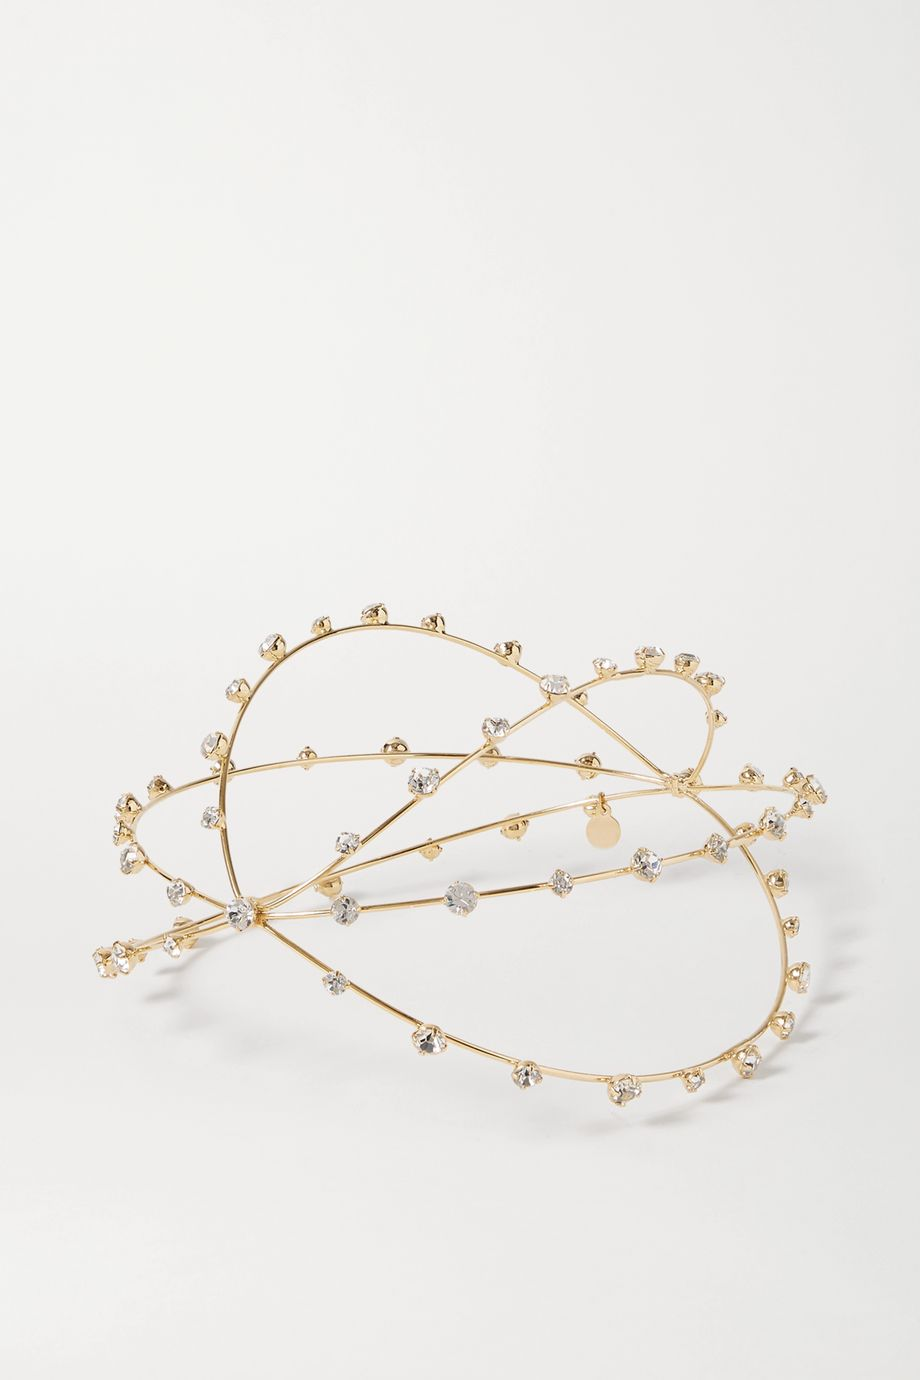 LELET NY Gold-tone crystal headpiece